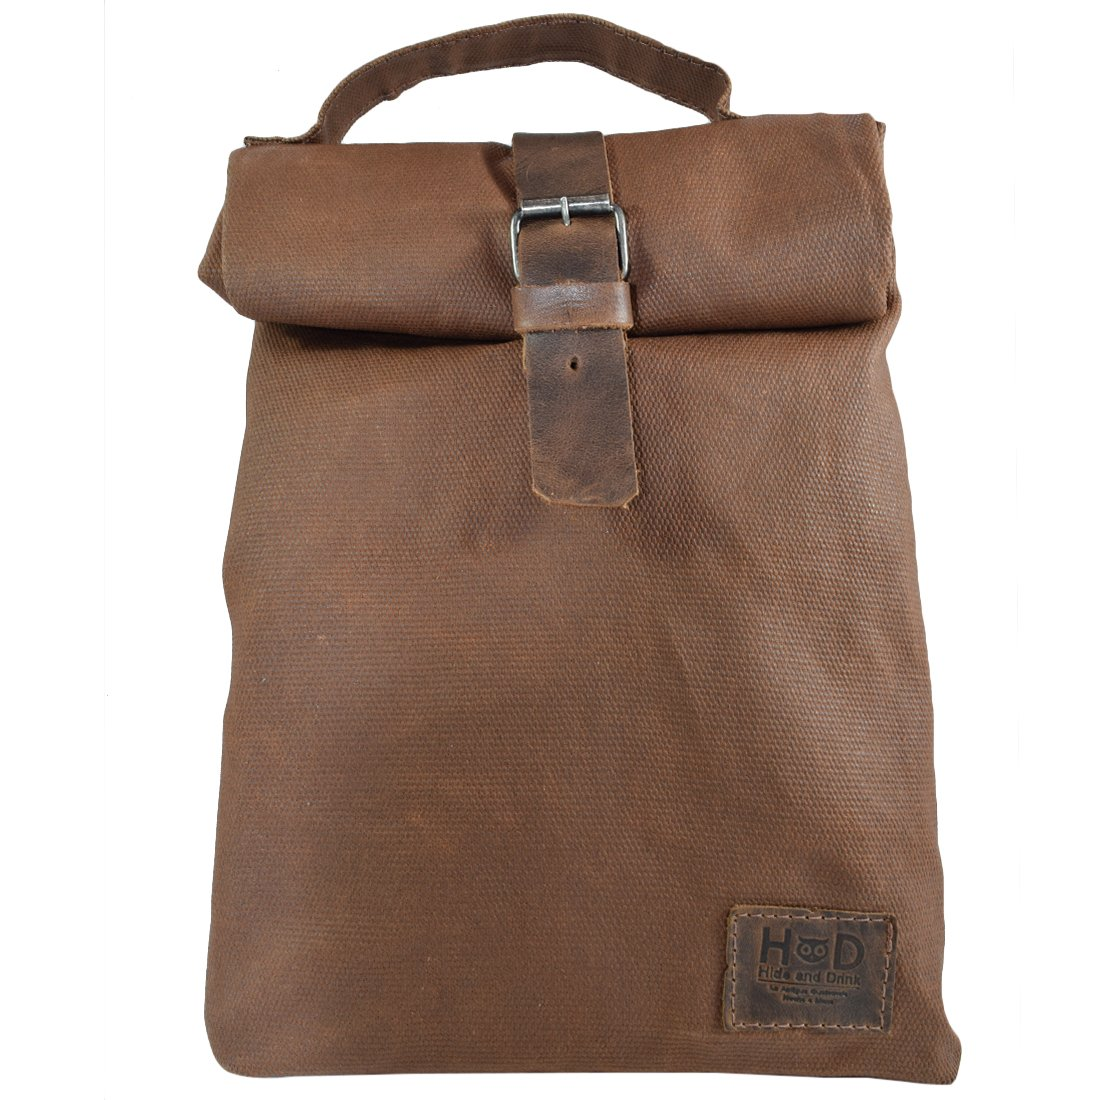 Waxed Canvas Insulated Reusable Lunch Bag w/Grip Easy Carry for Work/Travel Handmade by Hide & Drink :: Honey Bourbon